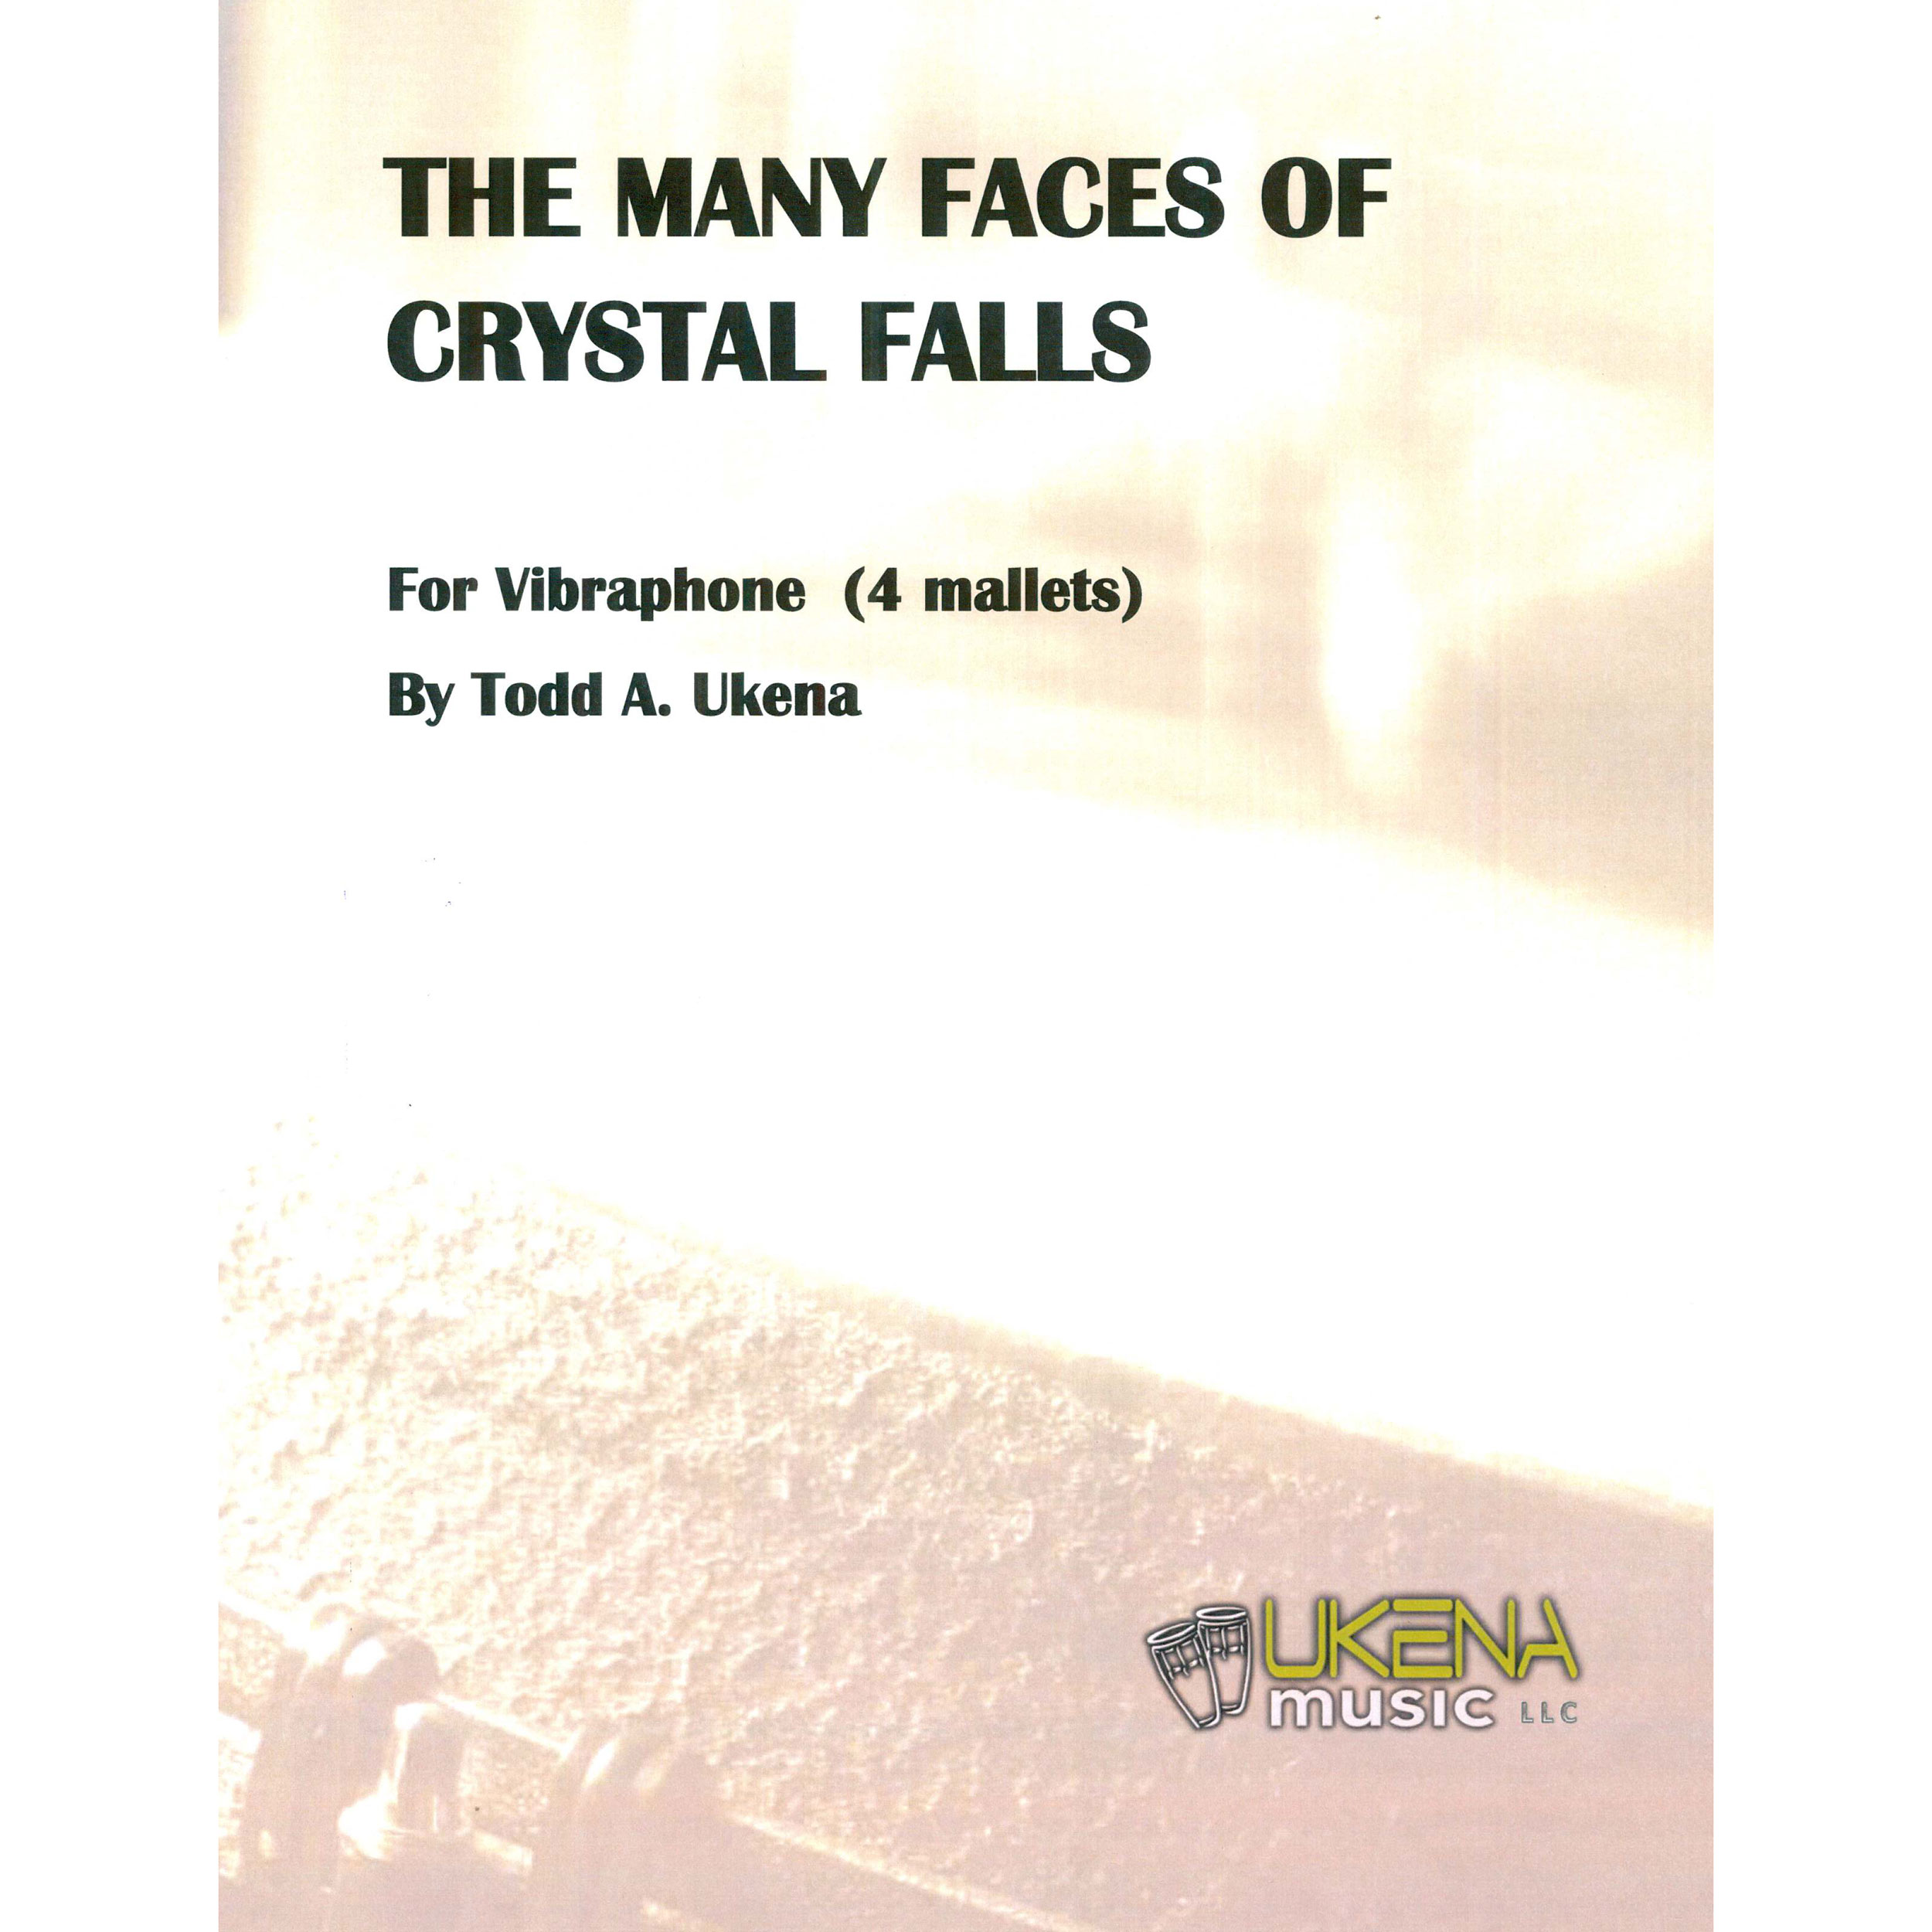 The Many Faces of Crystal Falls by Todd Ukena